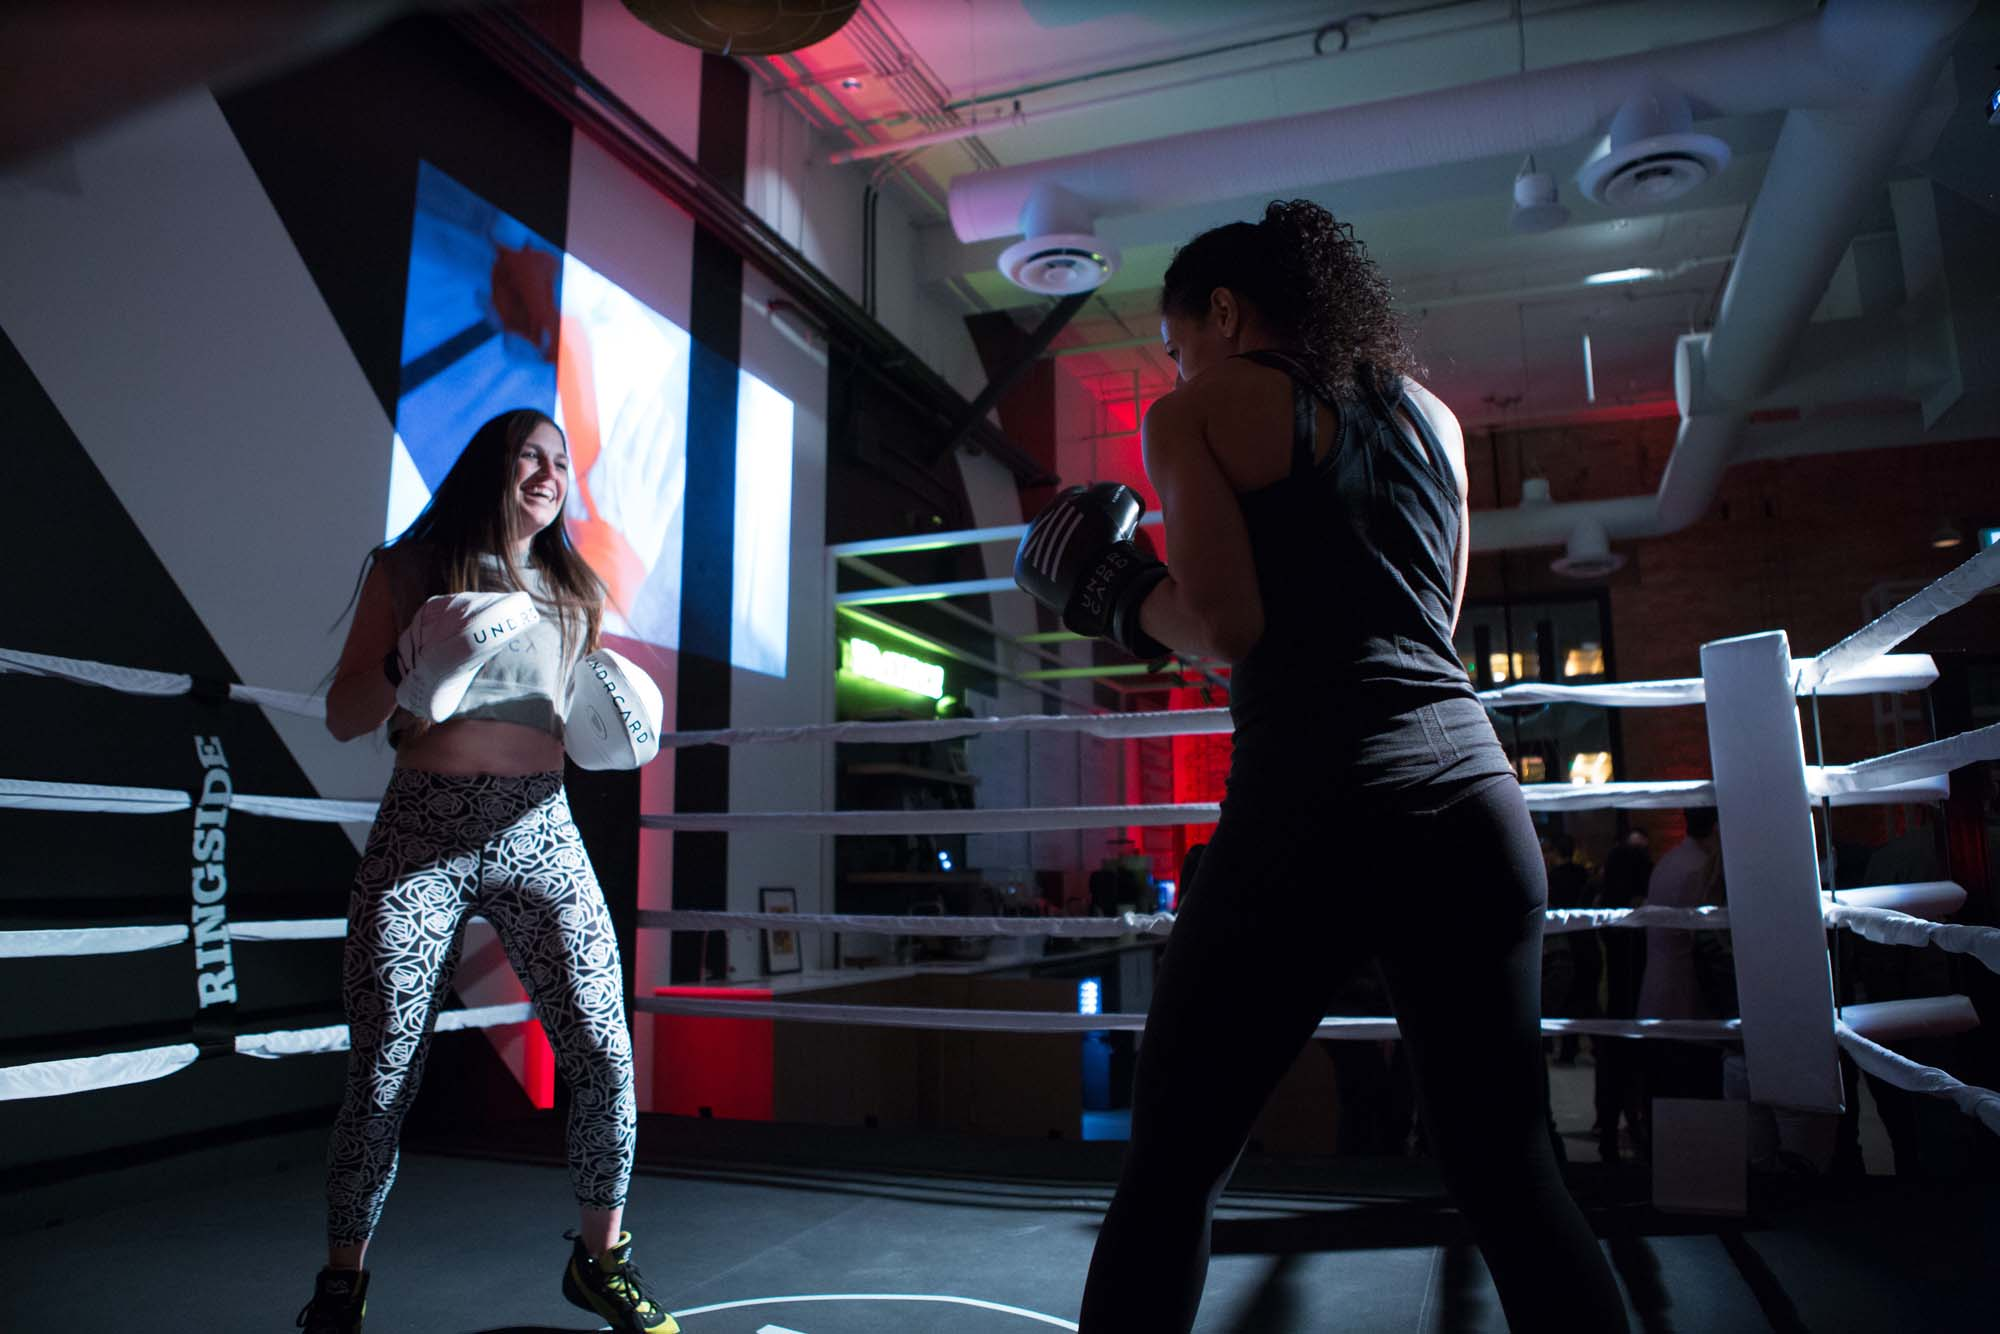 undrcard_boxing_studio_calgary_grand_opening_party20170120_0017.jpg